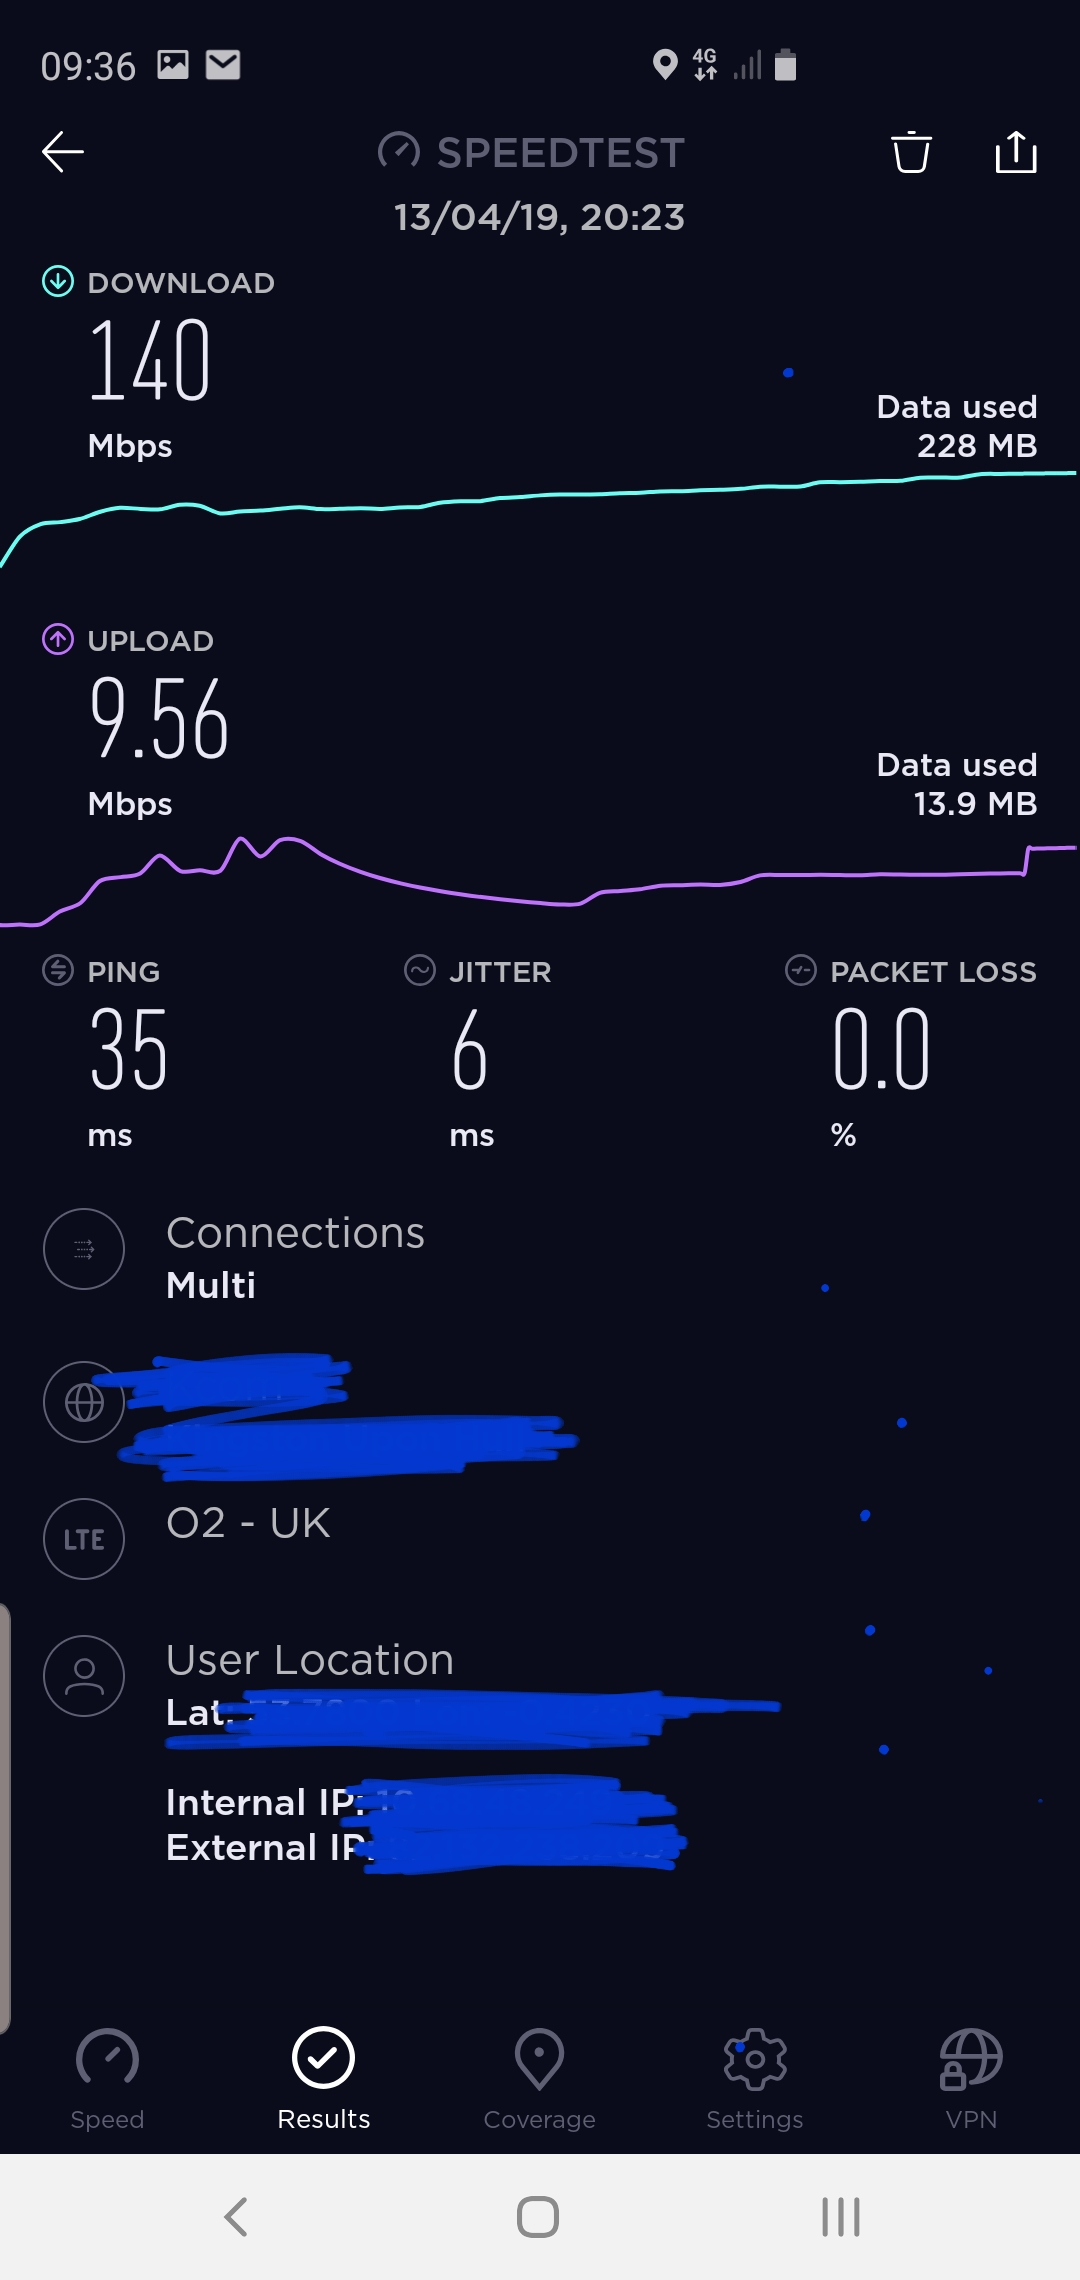 Screenshot_20190416-093659_Speedtest.jpg